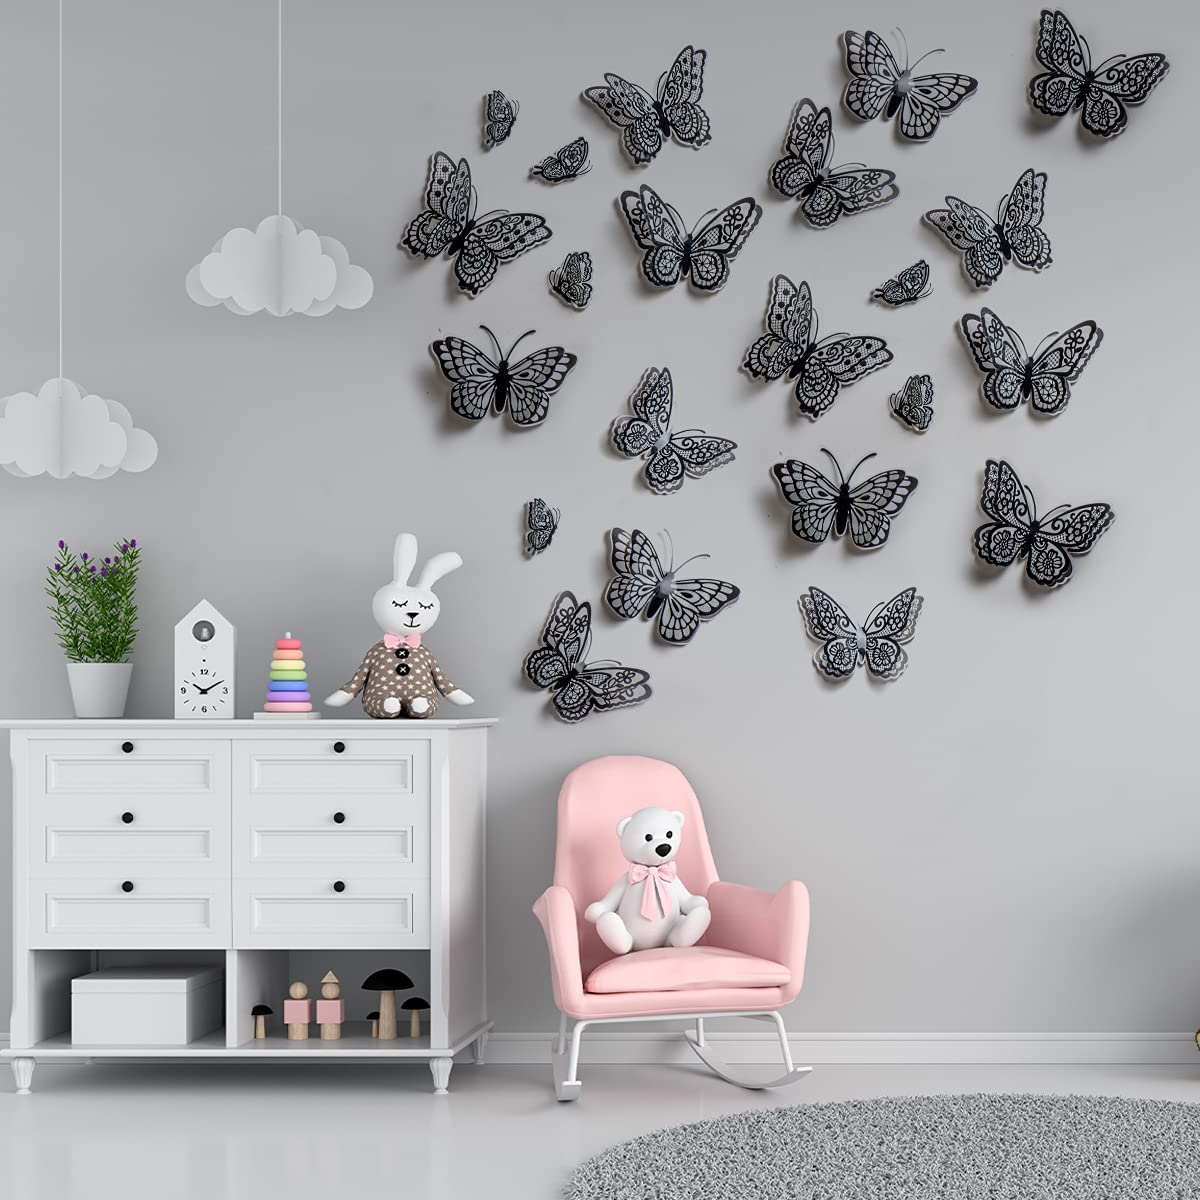 Butterfly Wall Decor for Girls Room Decals 3D- Glow in The Dark Ceiling Stickers (Black Butterfly - 22 Pcs)